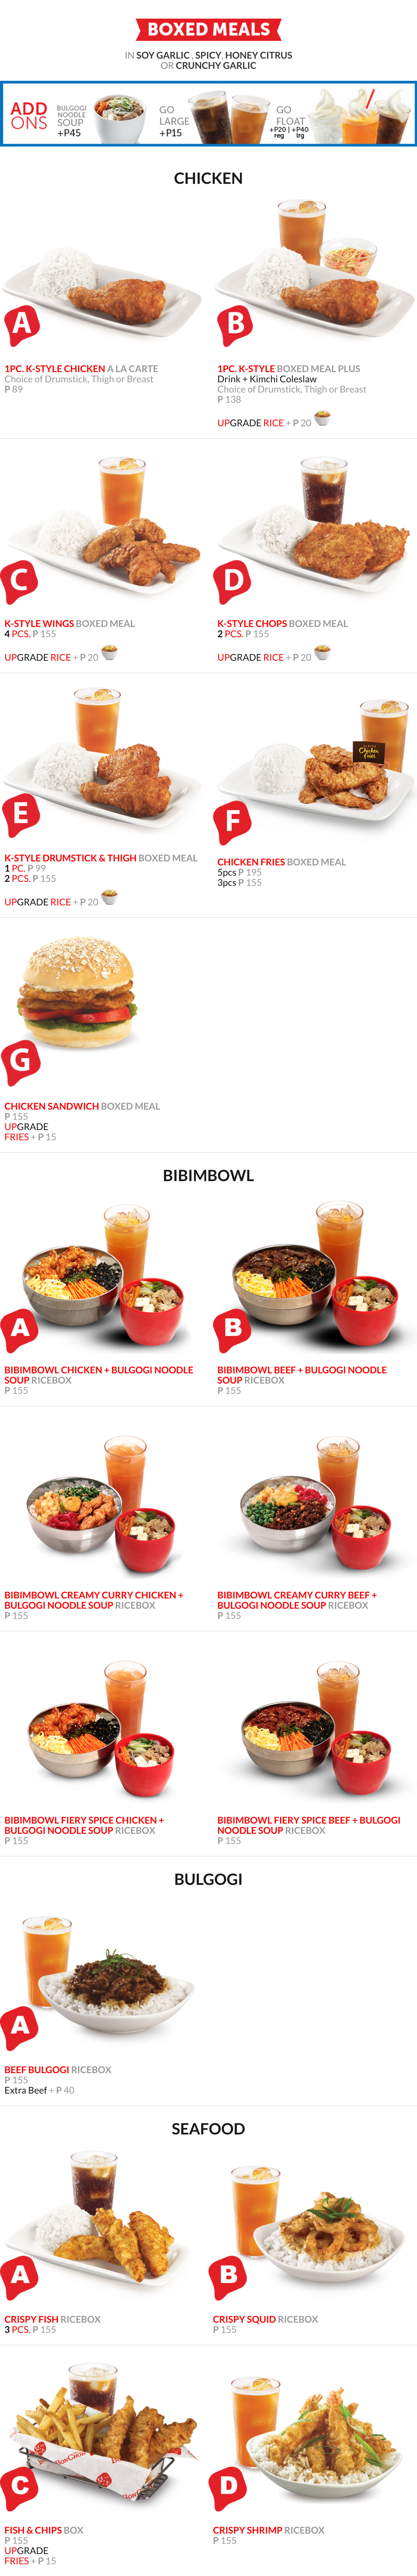 Bonchon Boxed Meals Menu